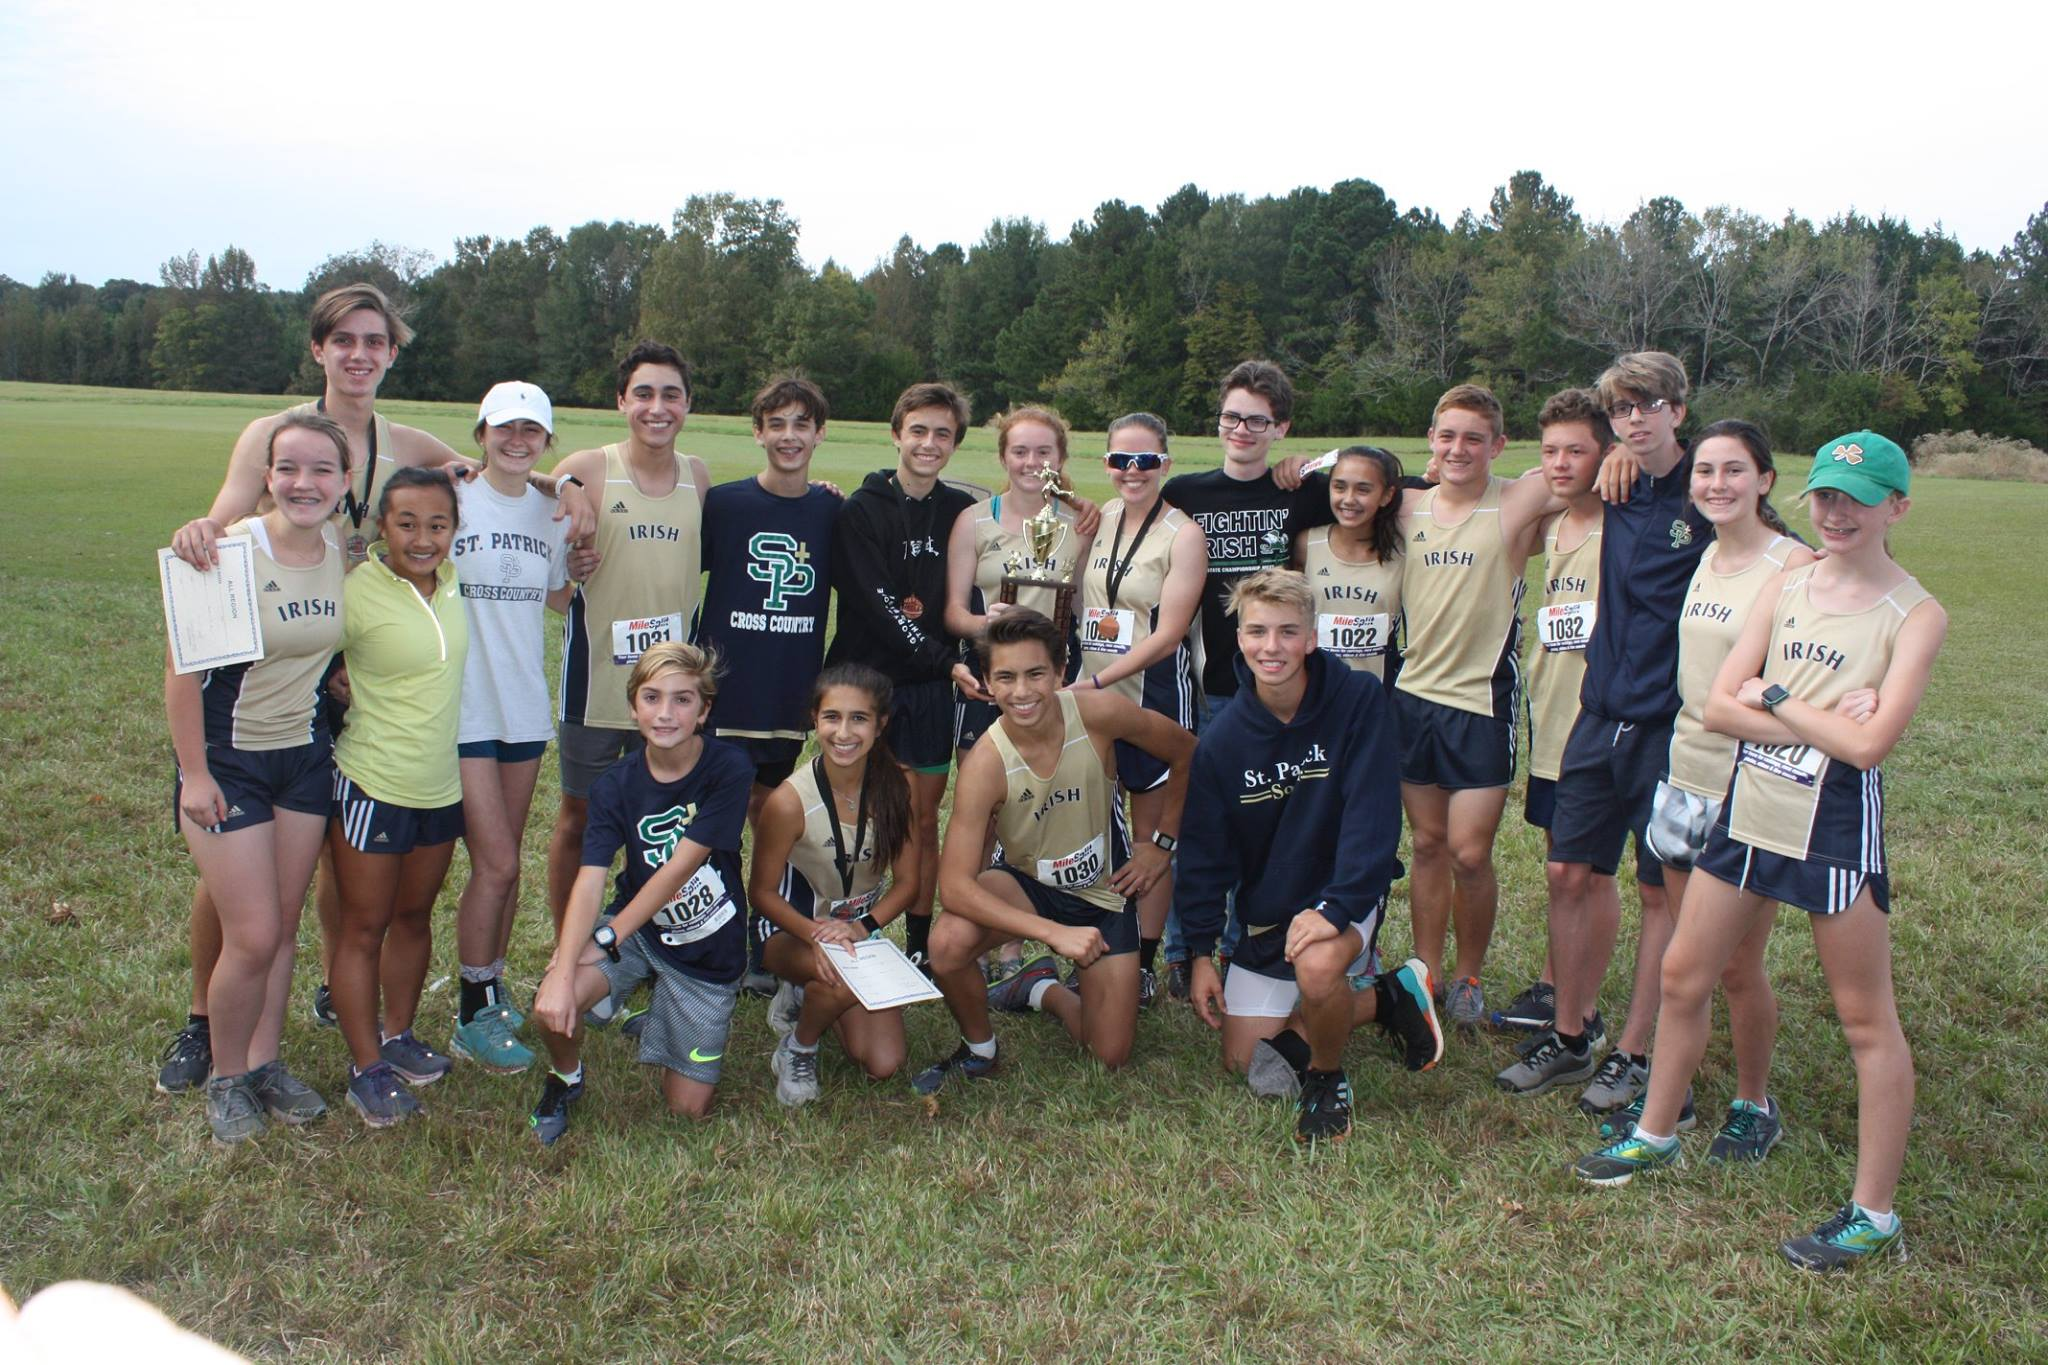 Fighting Irish Cross Country Team secures first place at MHSAA 2A Cross Country Regional Meet